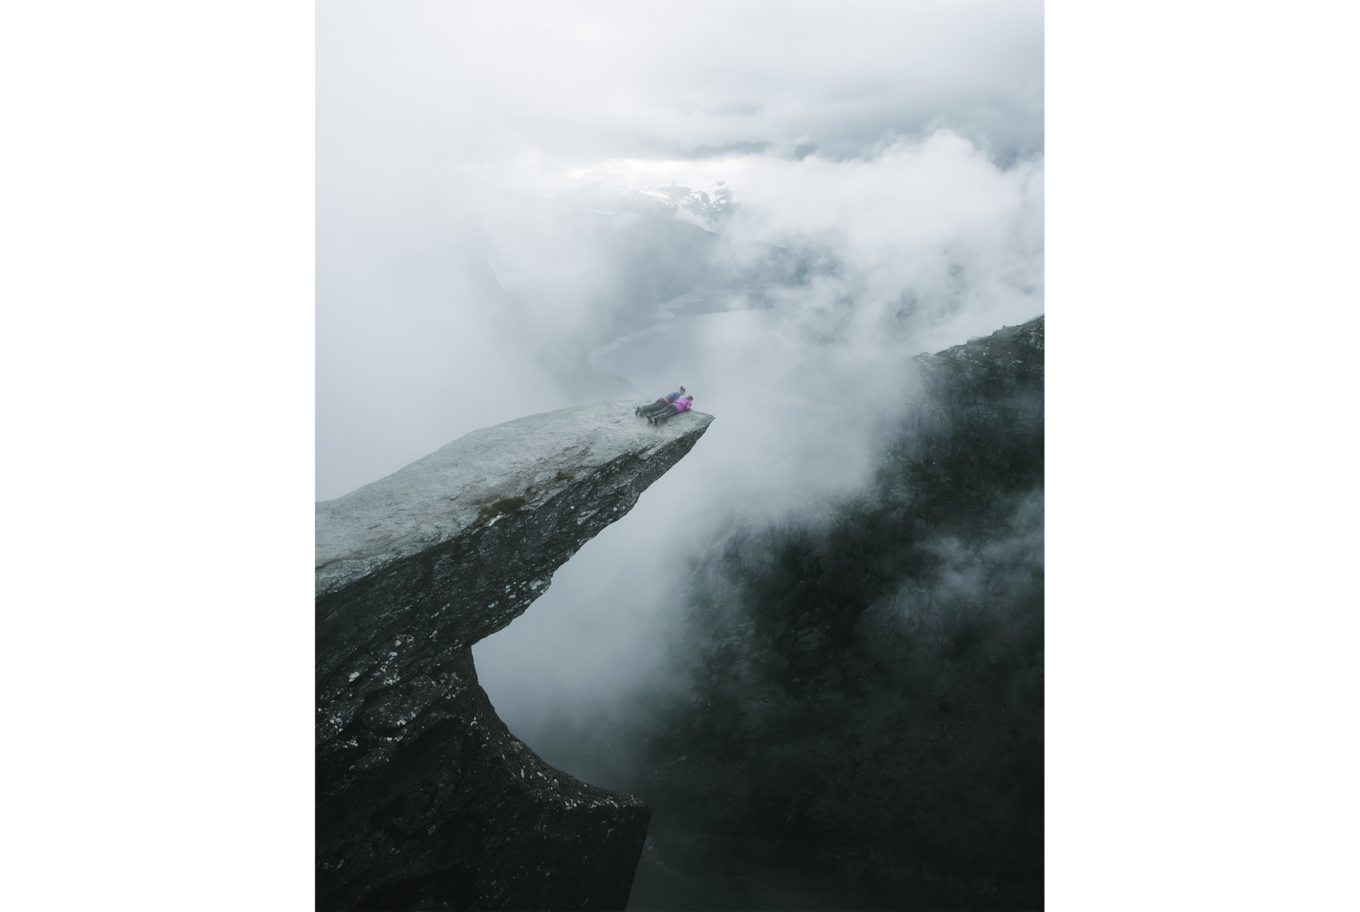 jack harding sony alpha 7r2 two people lay on the edge of a cliff in misty setting